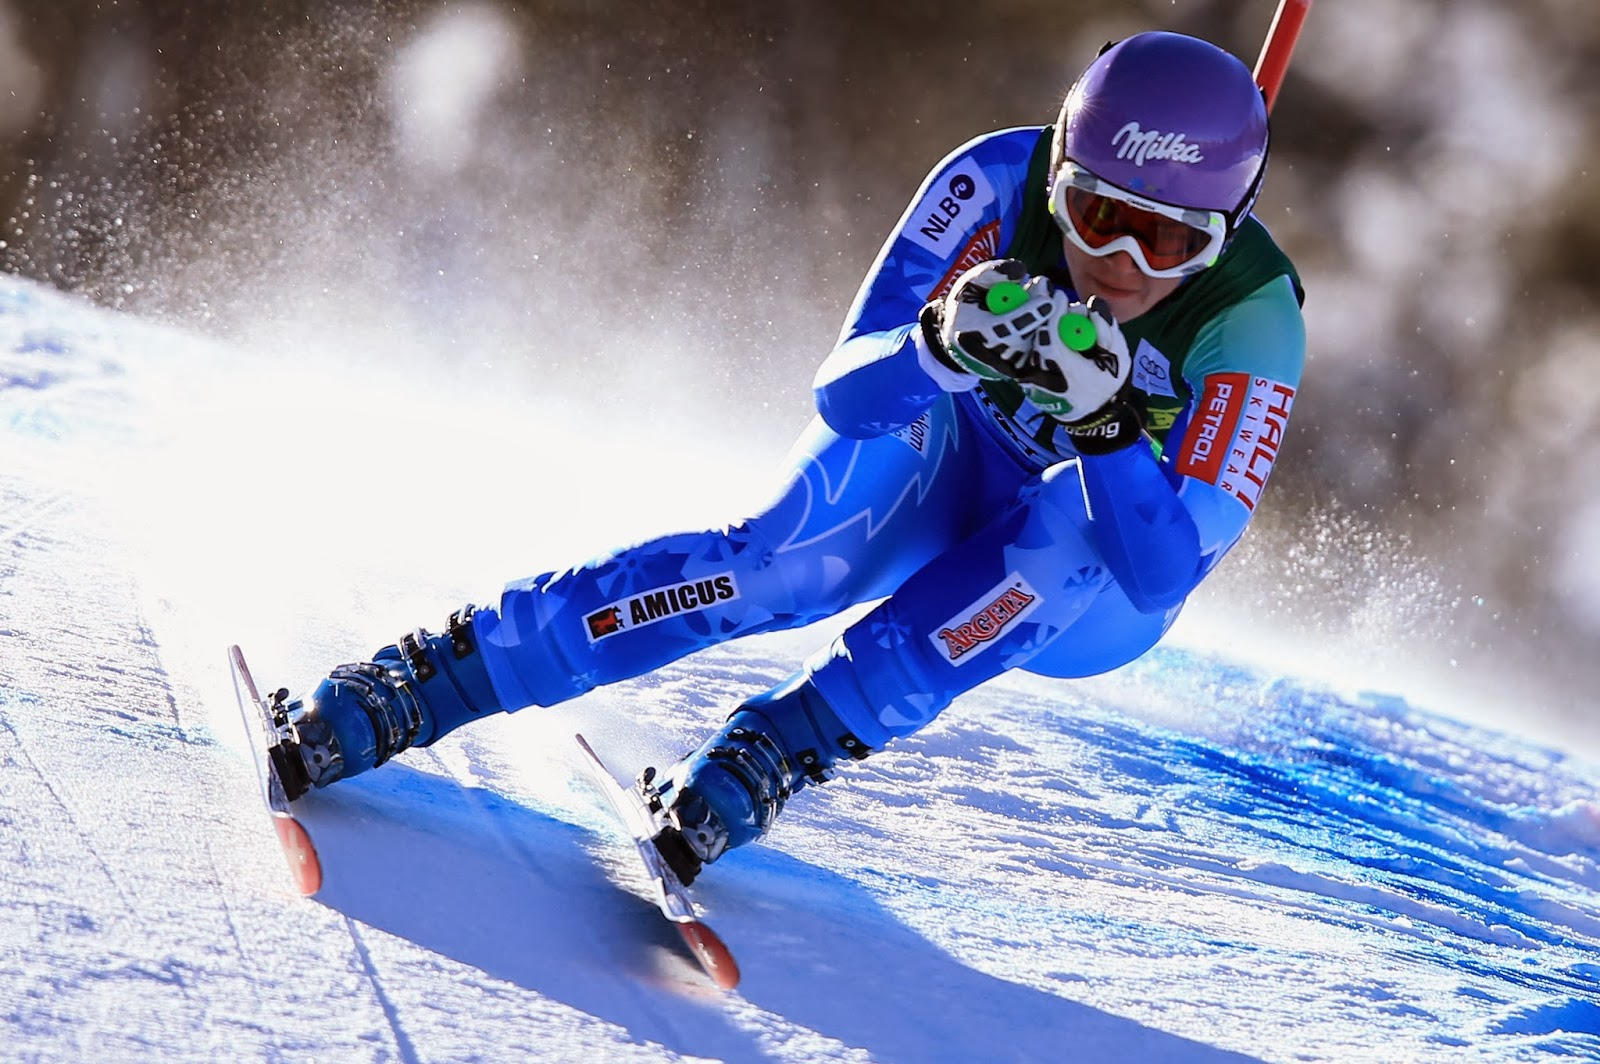 Audi FIS Alpine Ski World Cup, Beaver Creek, Colorado, Cup, Raptor, Ski, Ski World Cup, Skit, Sports, State, Training, US,